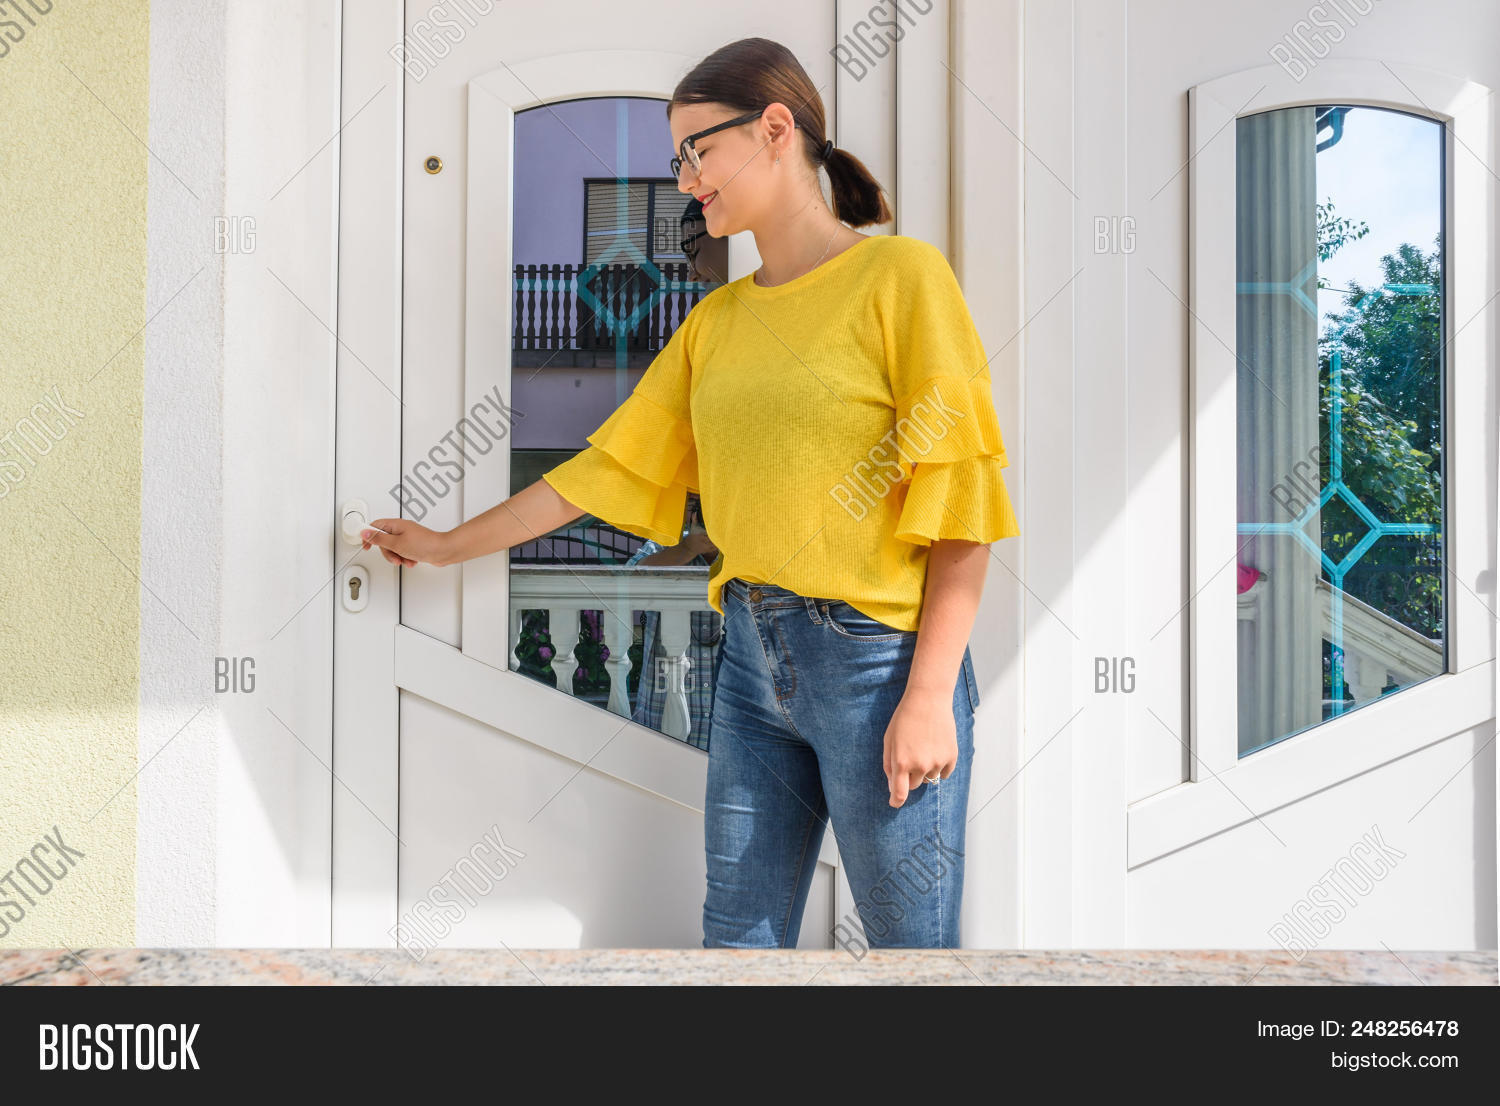 Front Door Pvc Girl Image Photo Free Trial Bigstock